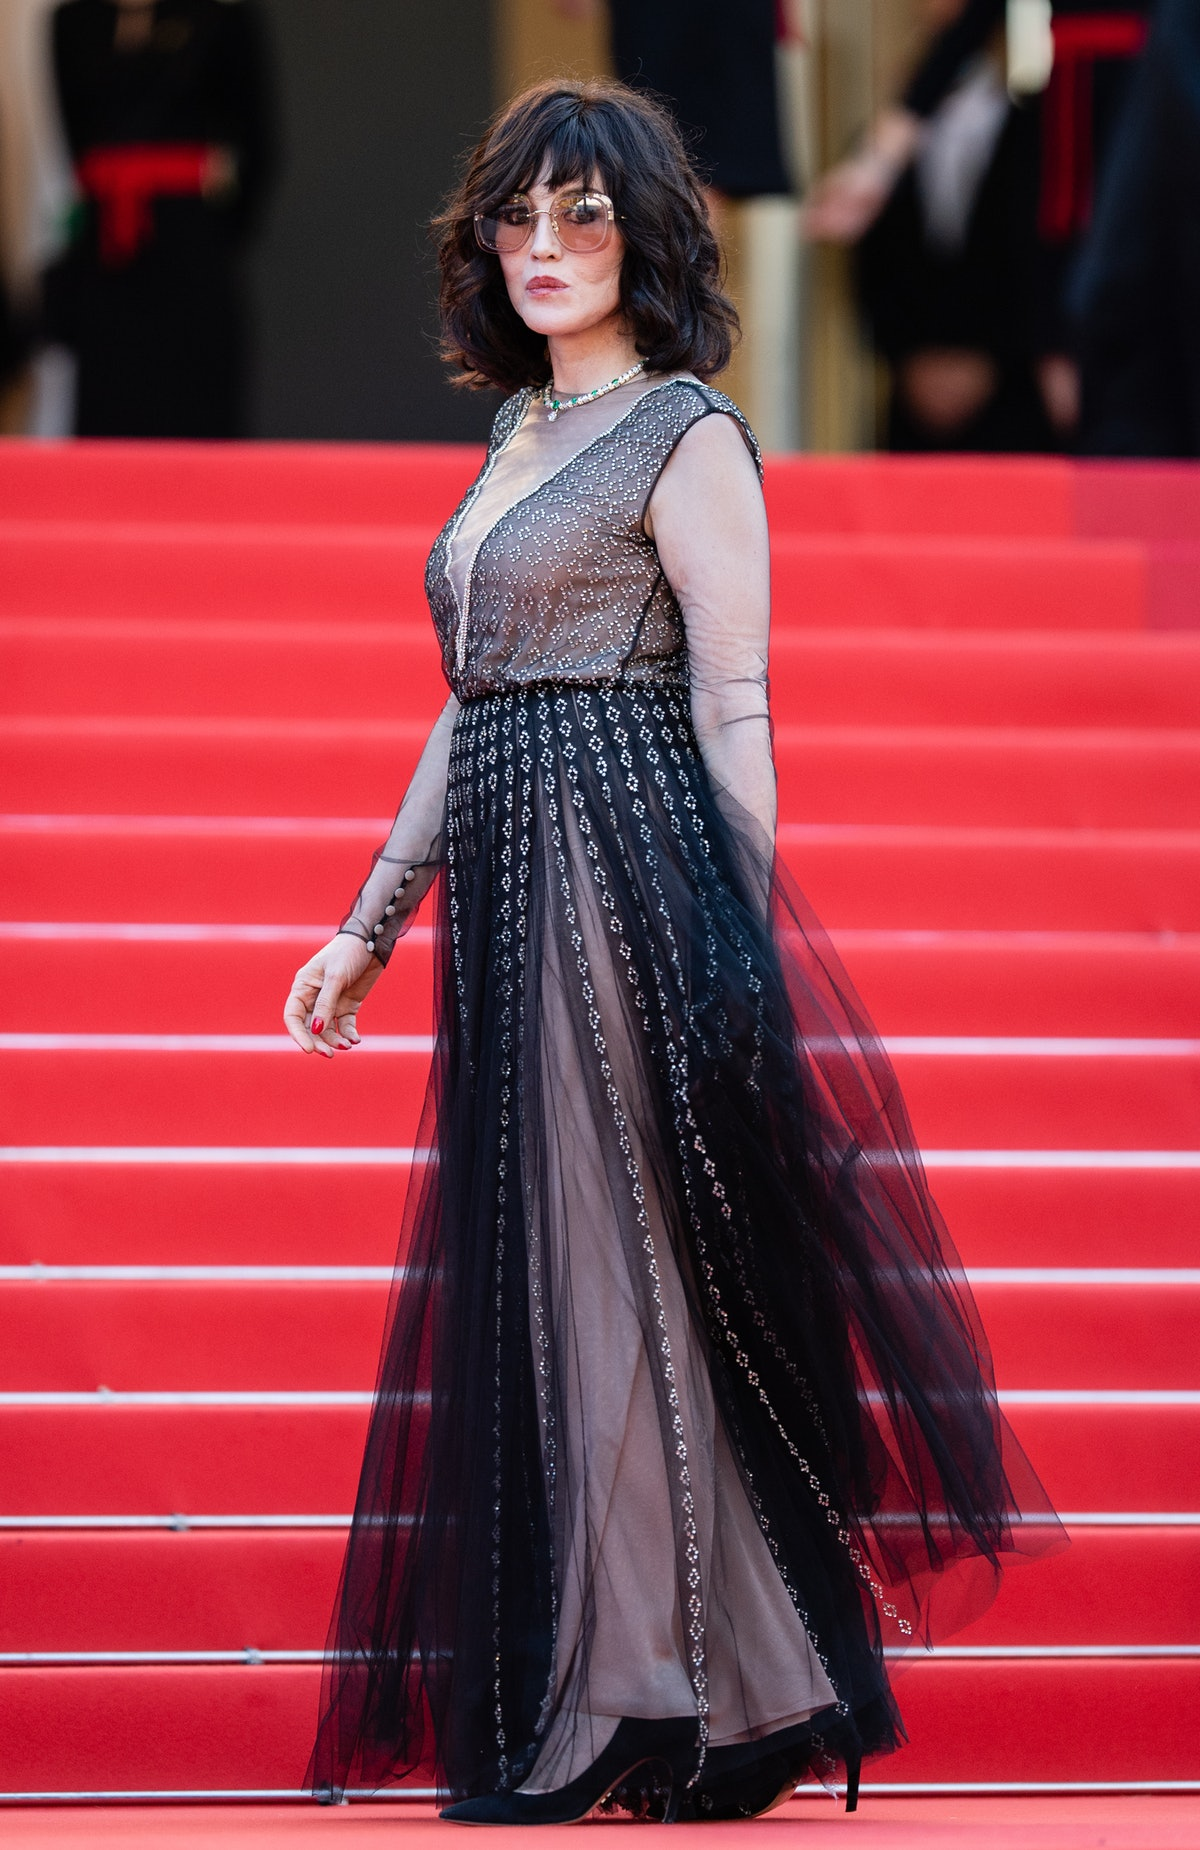 """CANNES, FRANCE - JULY 10: Isabelle Adjani attends the """"De Son Vivient (Peaceful)"""" screening during the 74th annual Cannes Film Festival on July 10, 2021 in Cannes, France. (Photo by Samir Hussein/WireImage)"""